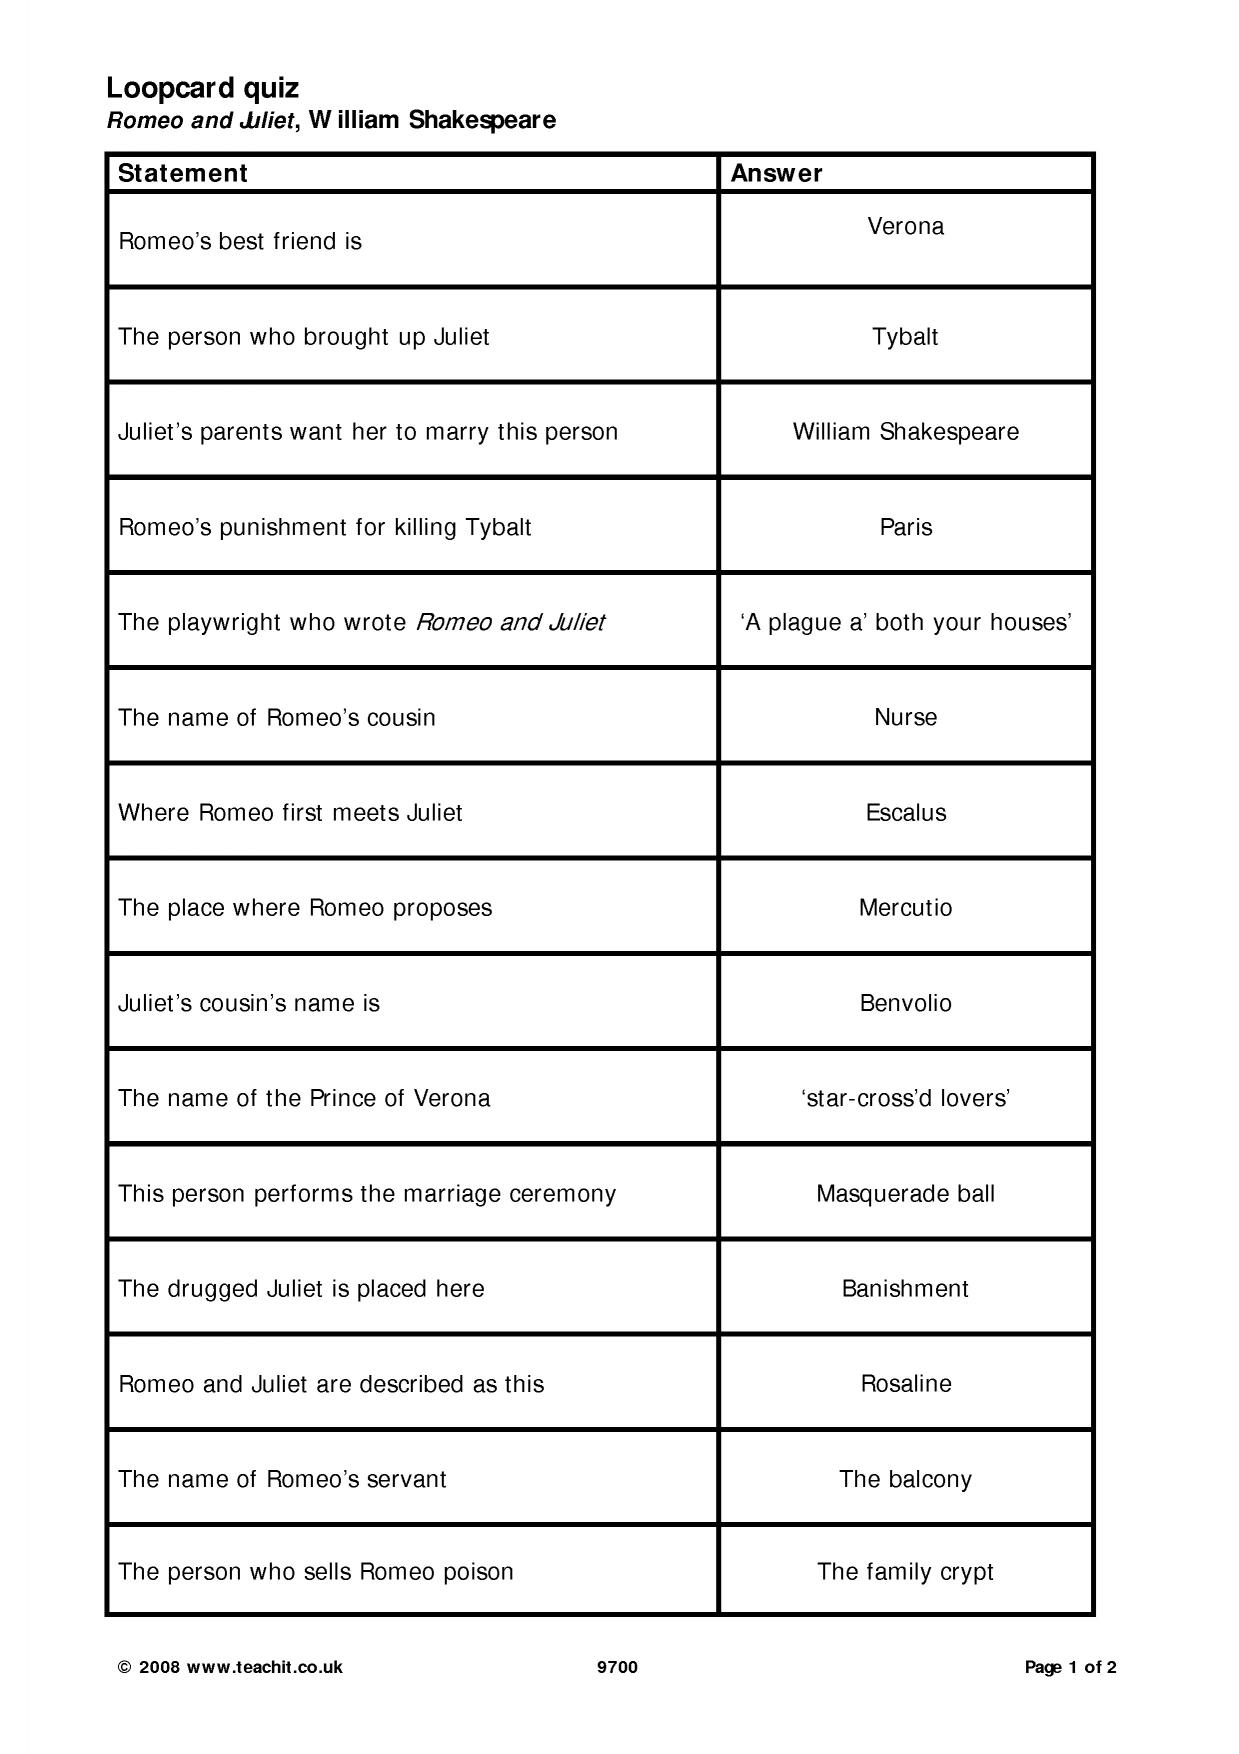 worksheet Romeo And Juliet Prologue Worksheet romeo juliet prologue search results teachit english 2 preview